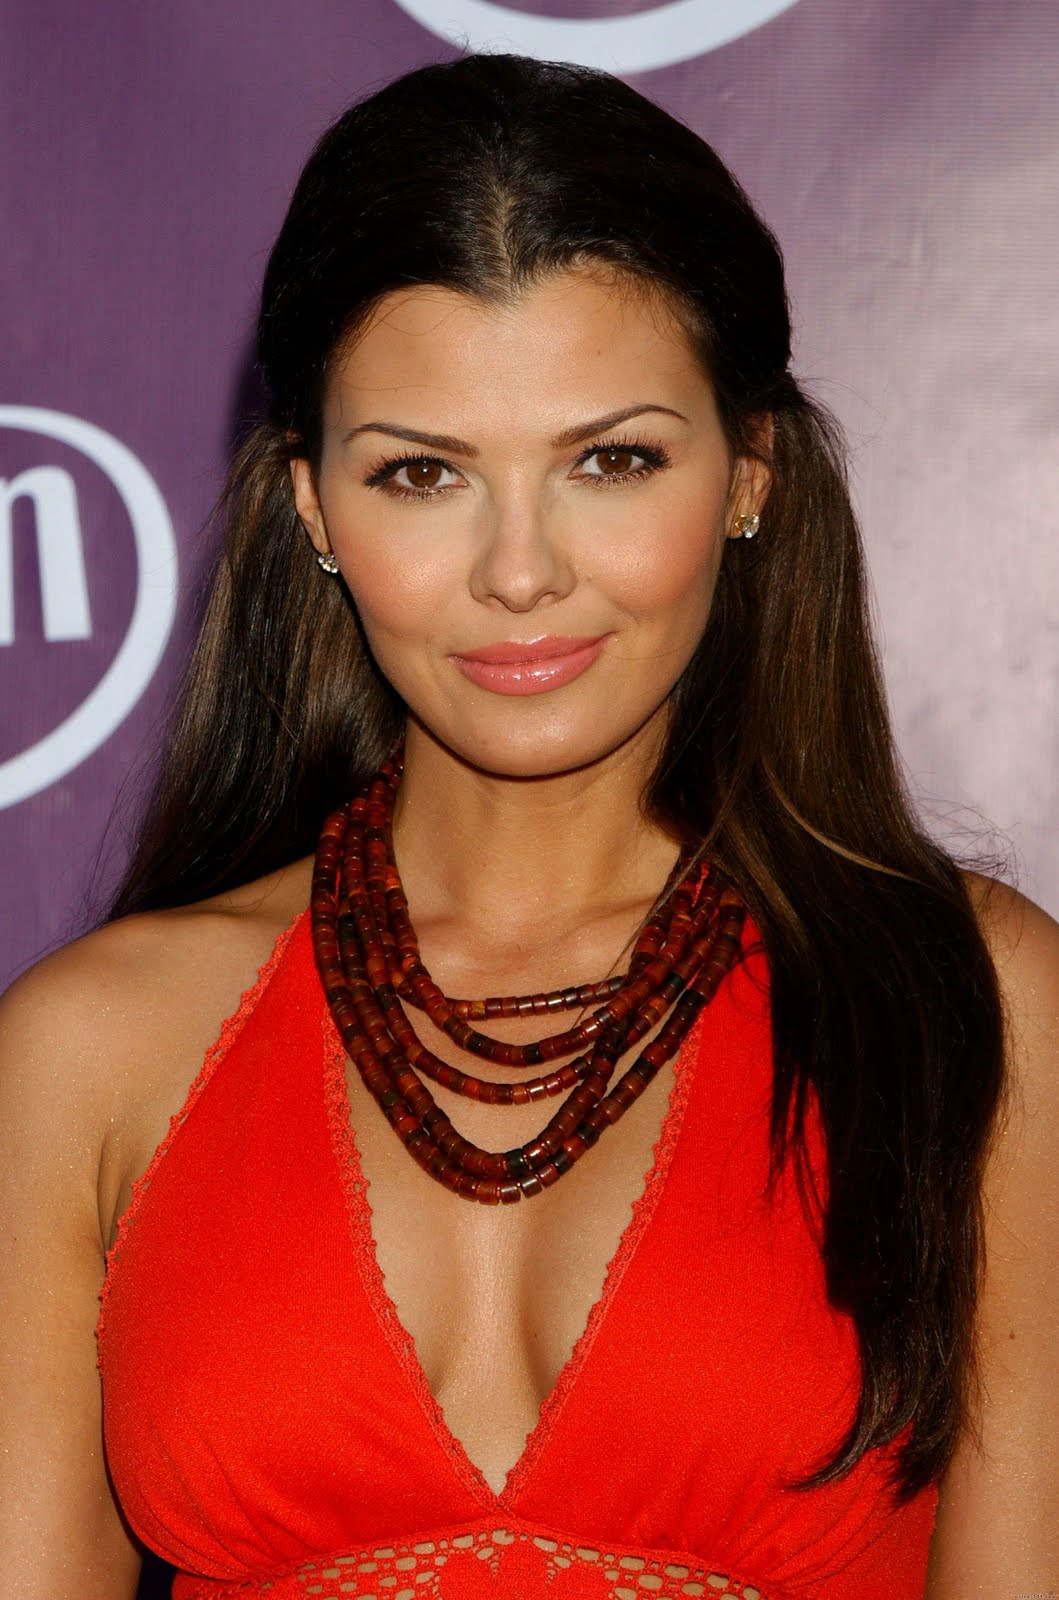 http://4.bp.blogspot.com/--B6d-J-m84I/TmEZAs_FxYI/AAAAAAAACg8/CL2cOIwT8wE/s1600/Ali-Landry-photo.jpg